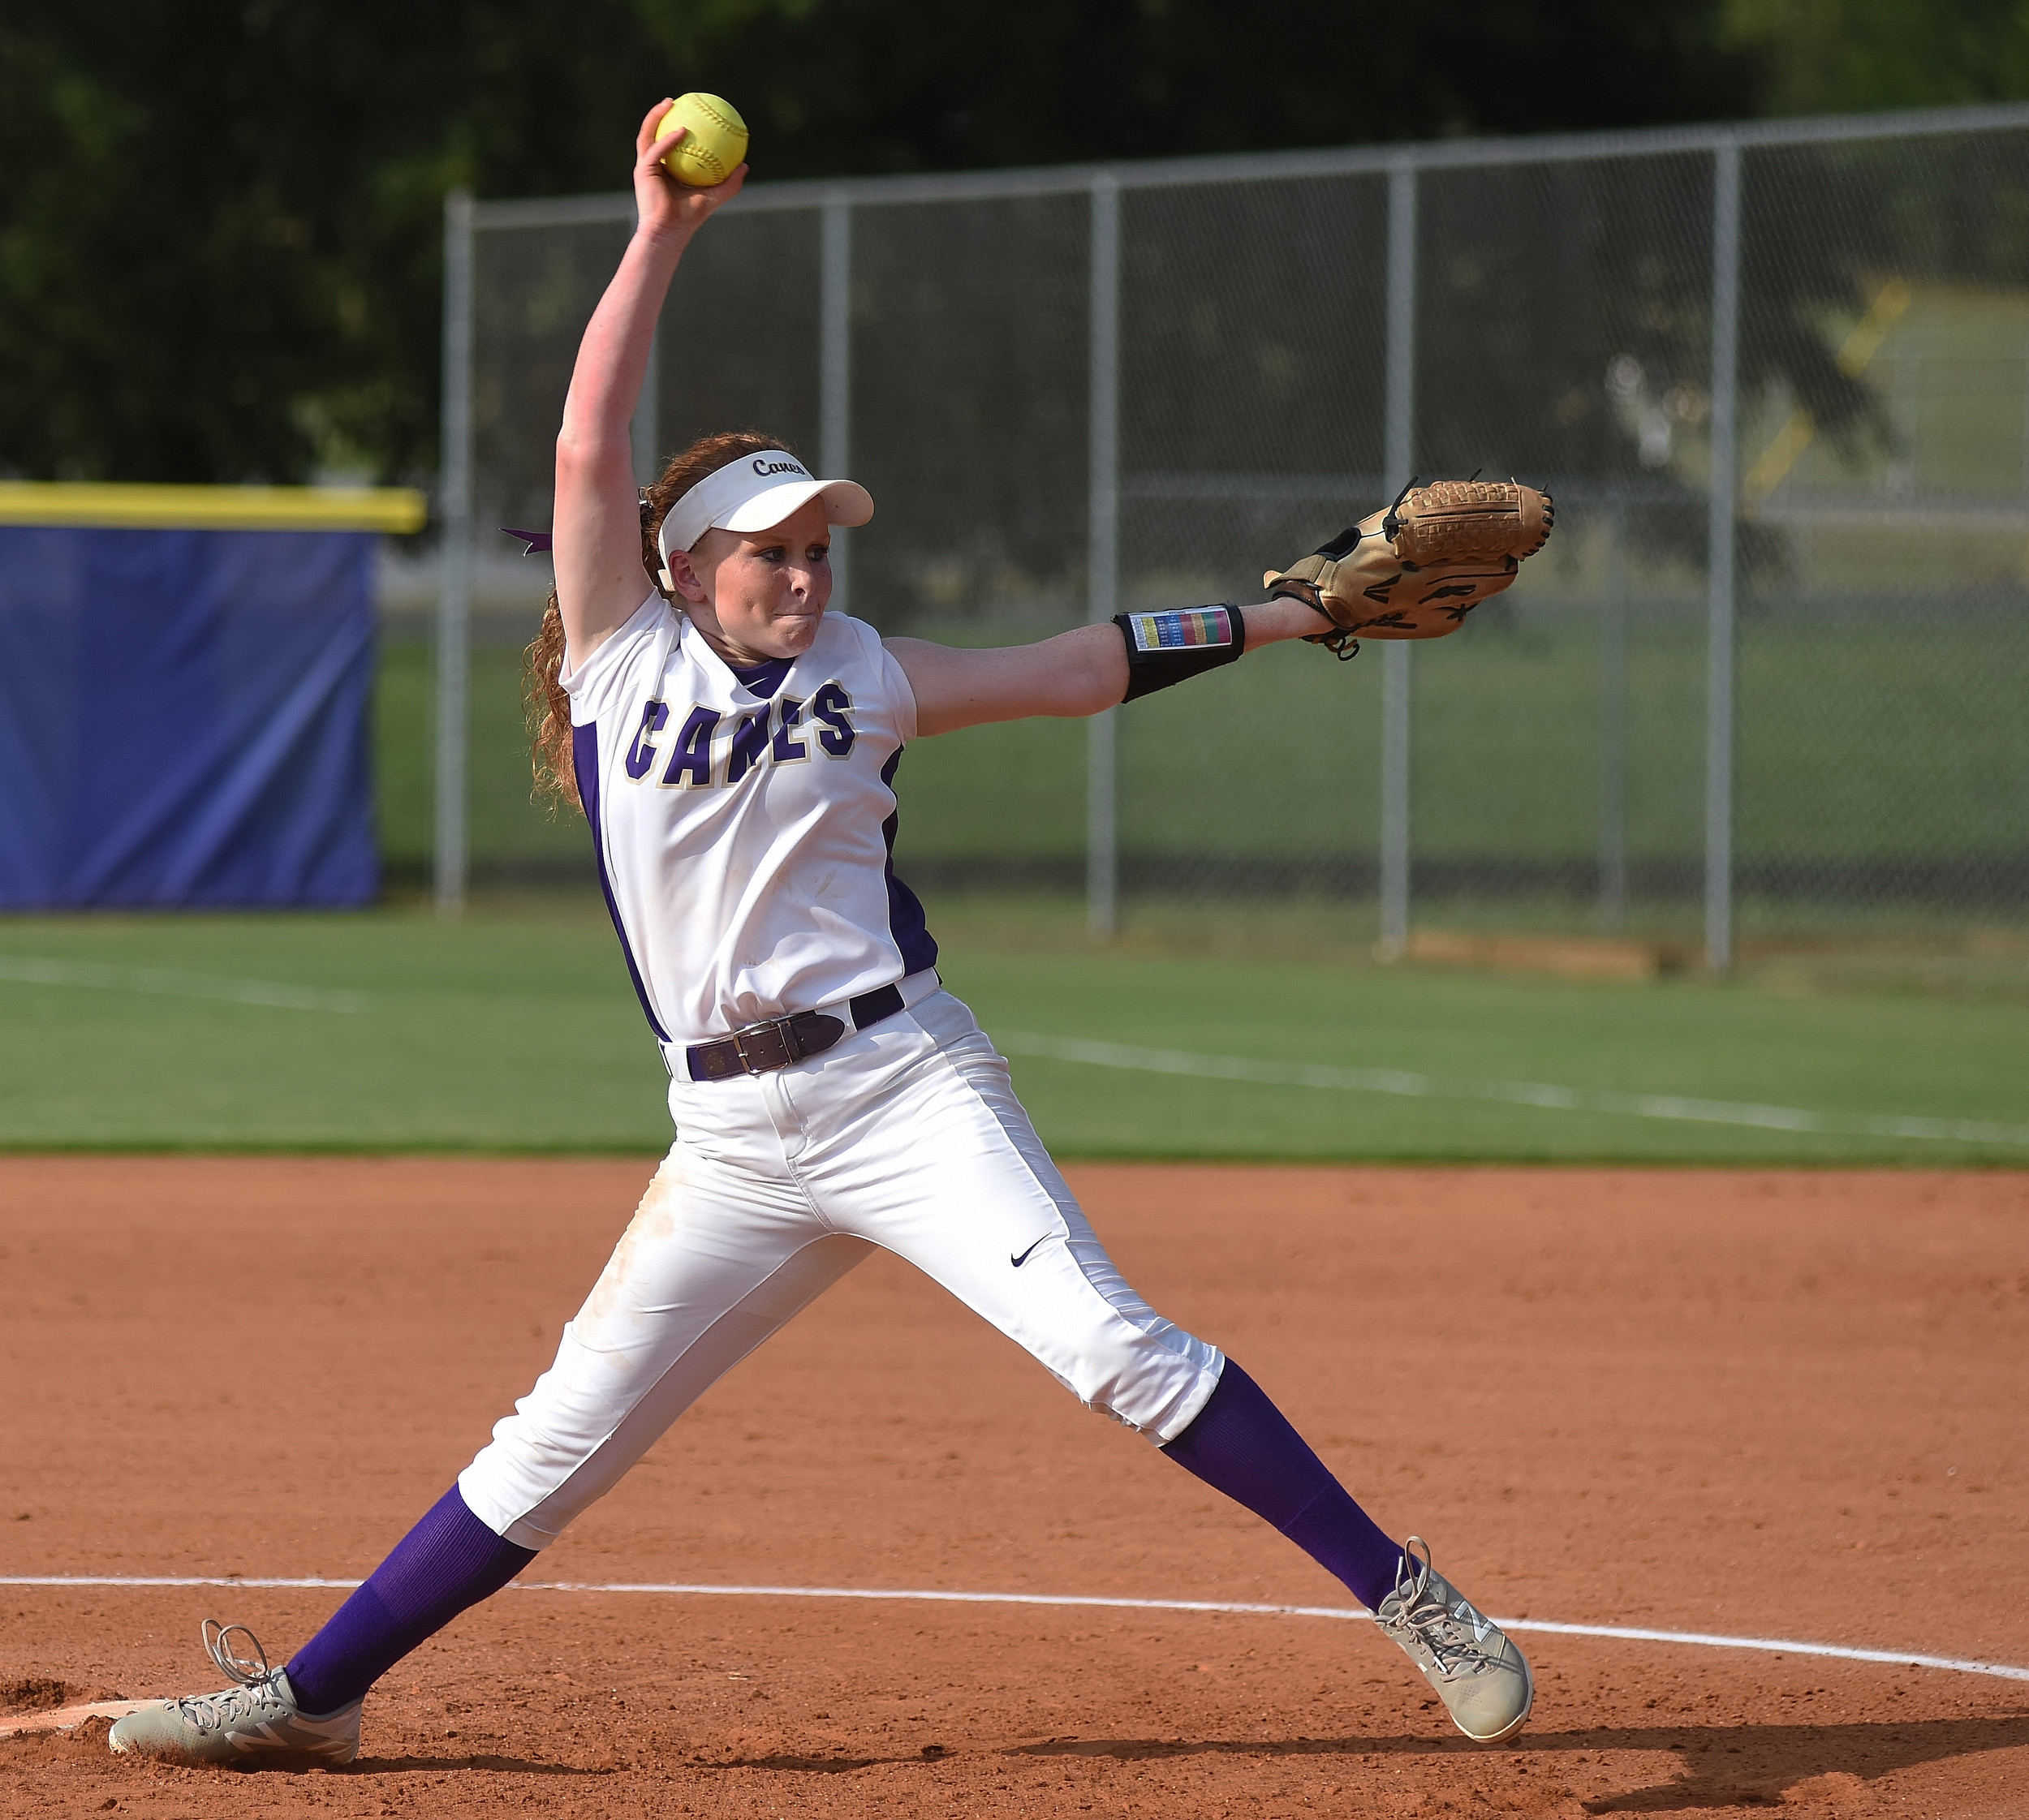 Cartersville's Anna Kate McElhaney throws a pitch during Thursday's home game against Woodland. The sophomore struck out five in a complete-game victory.